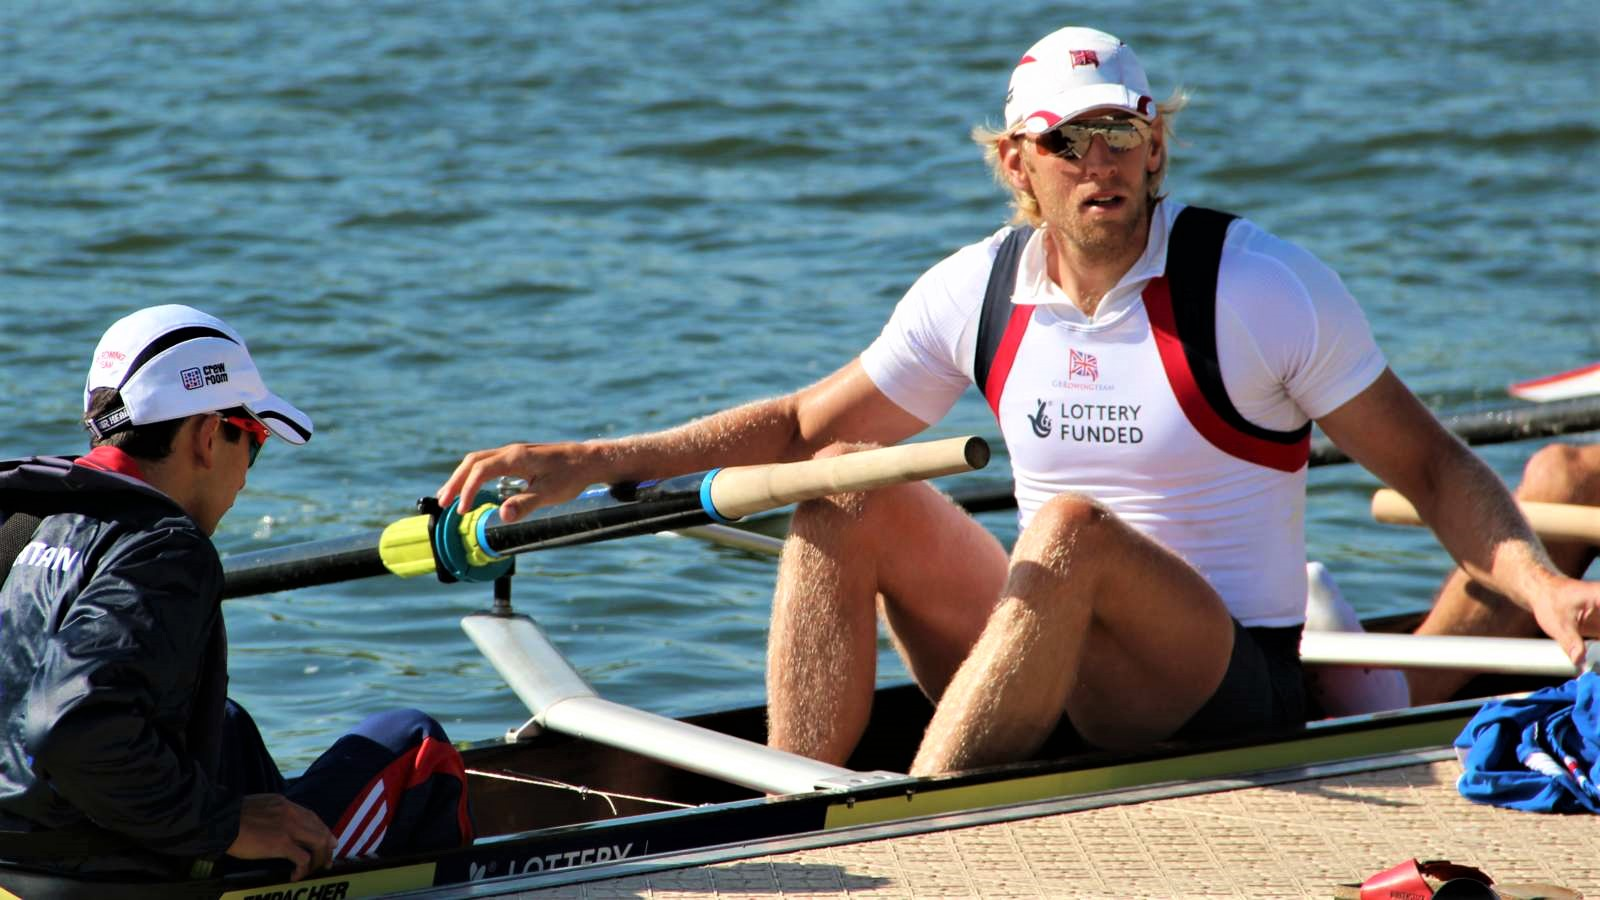 British Rowing | The National Governing Body for Rowing